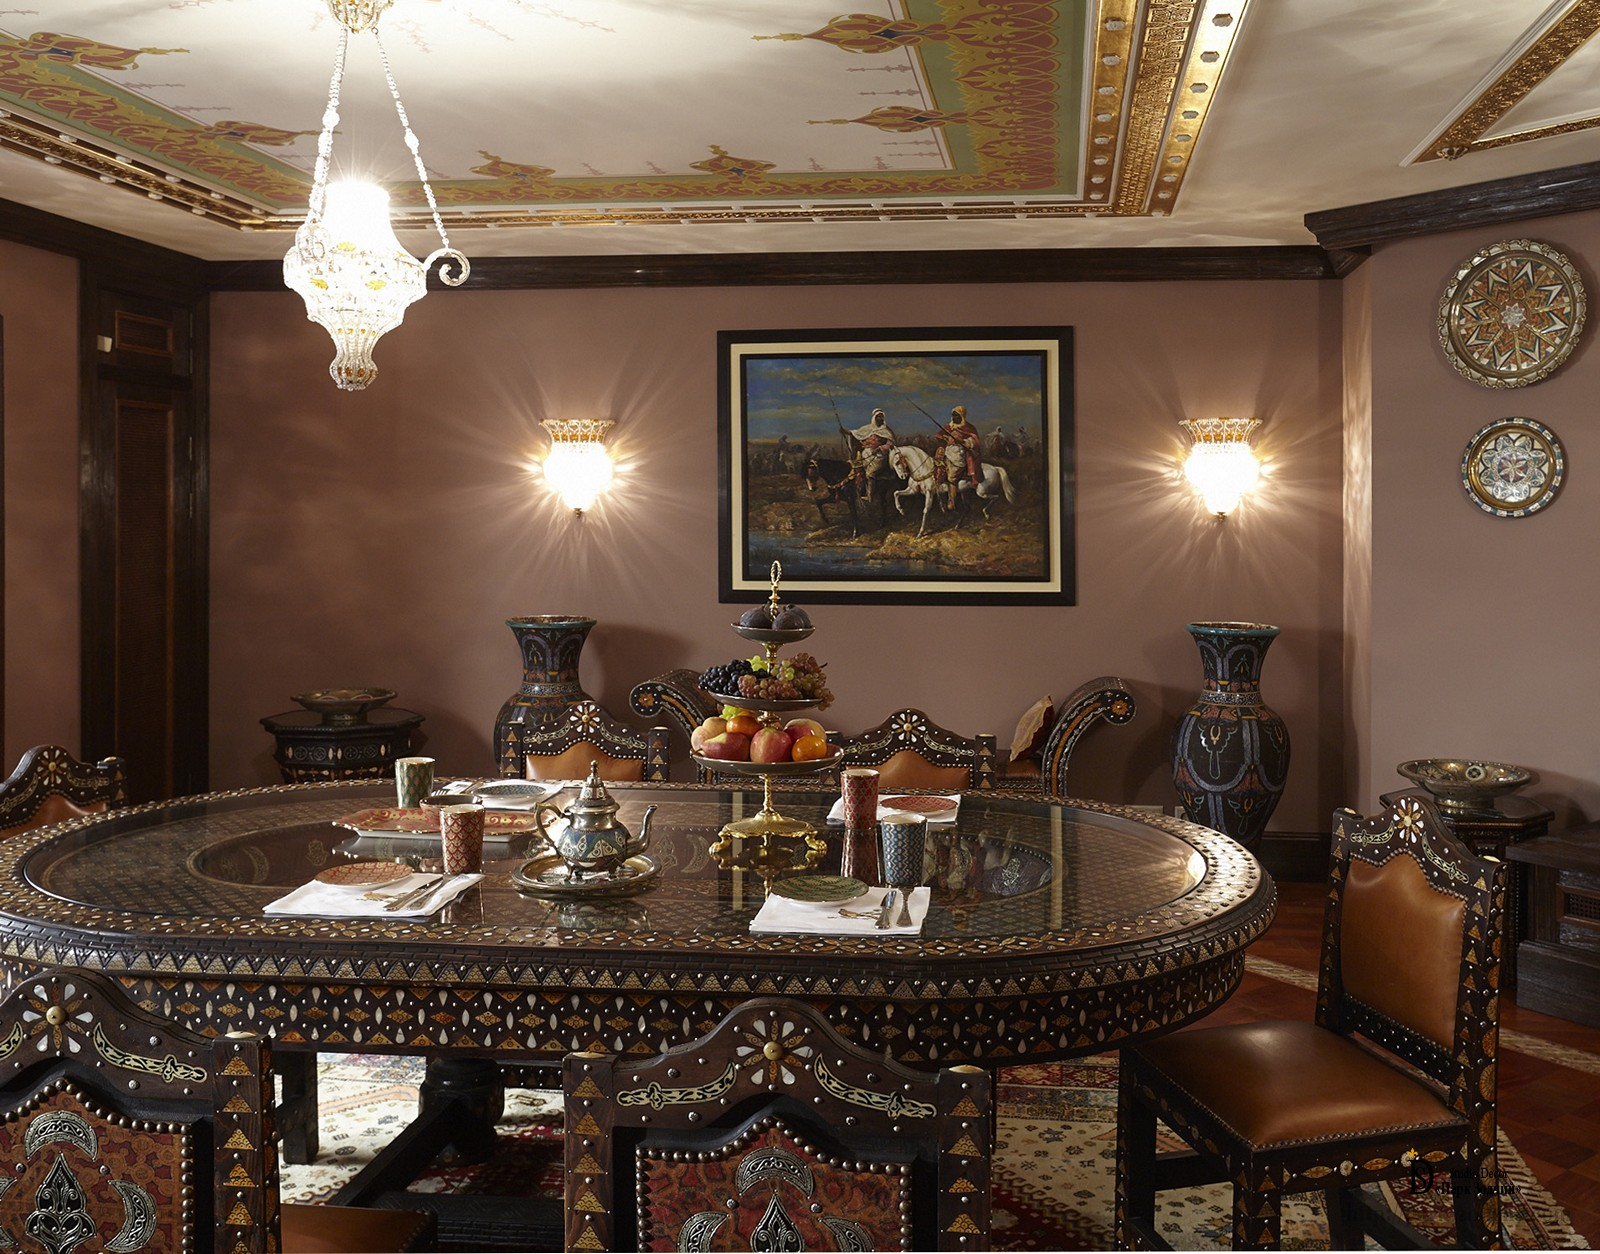 Living Room In The Moroccan Style With Ornamental Painting